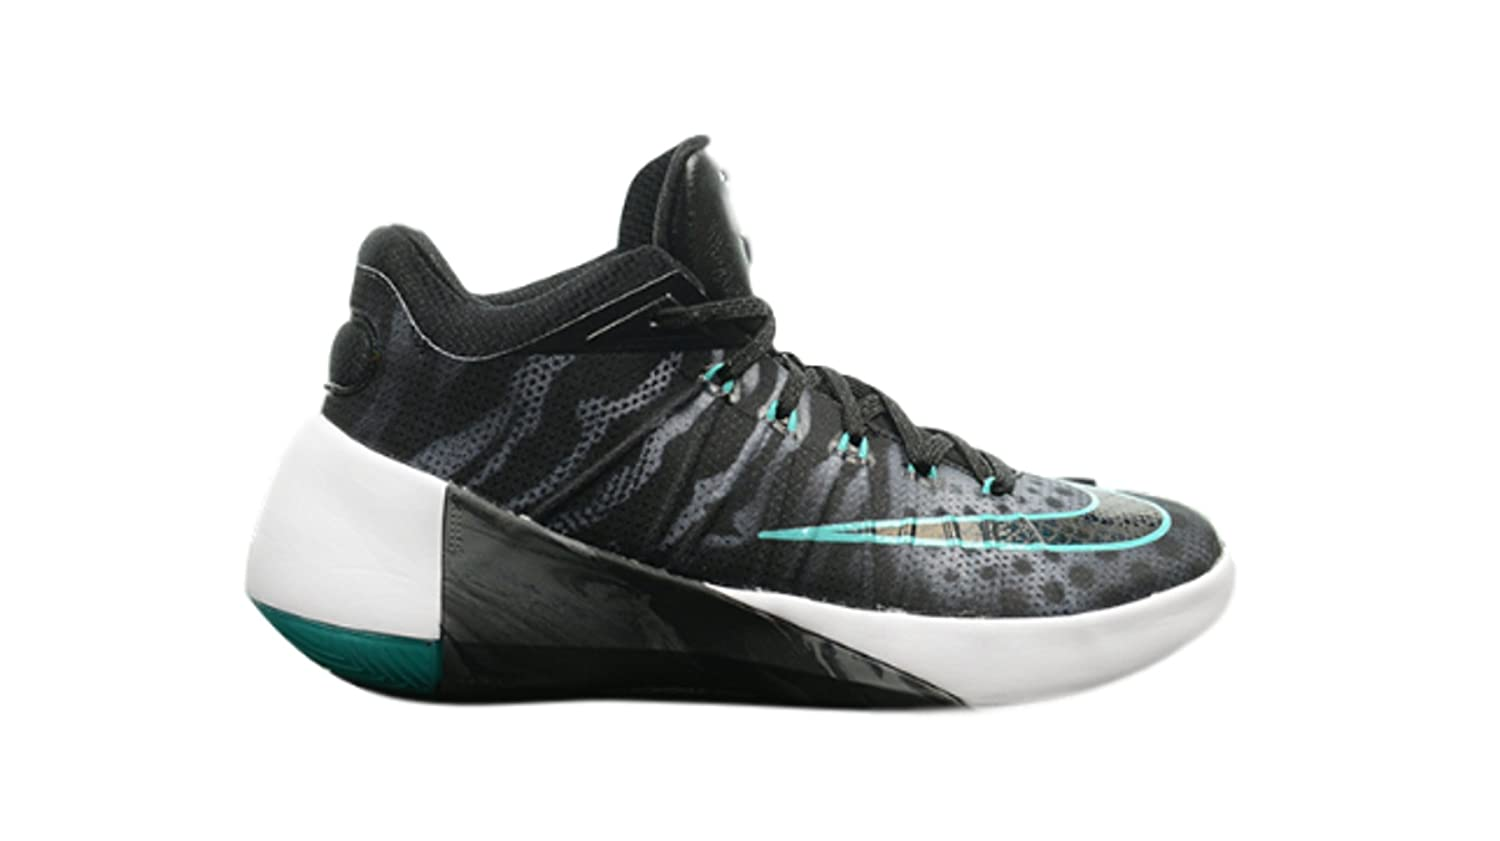 huge discount 4097f 7974a Nike Hyperdunk 2015 Low Limited Men's Basketball Shoes